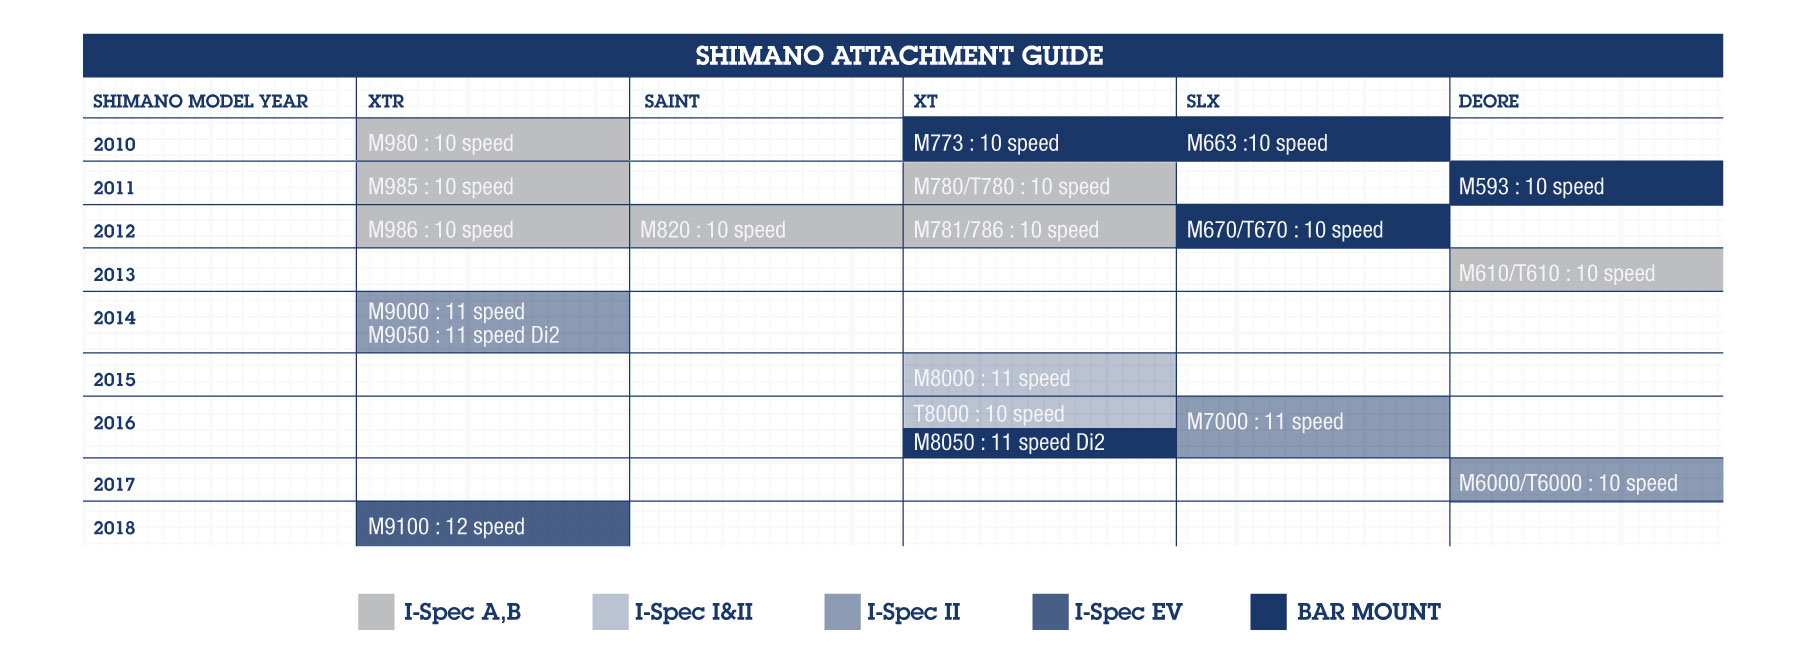 Find your Shimano components on this chart by using the groupset name, release year or model number. The filled in color shows which attachment system each part uses. Right click the image and select